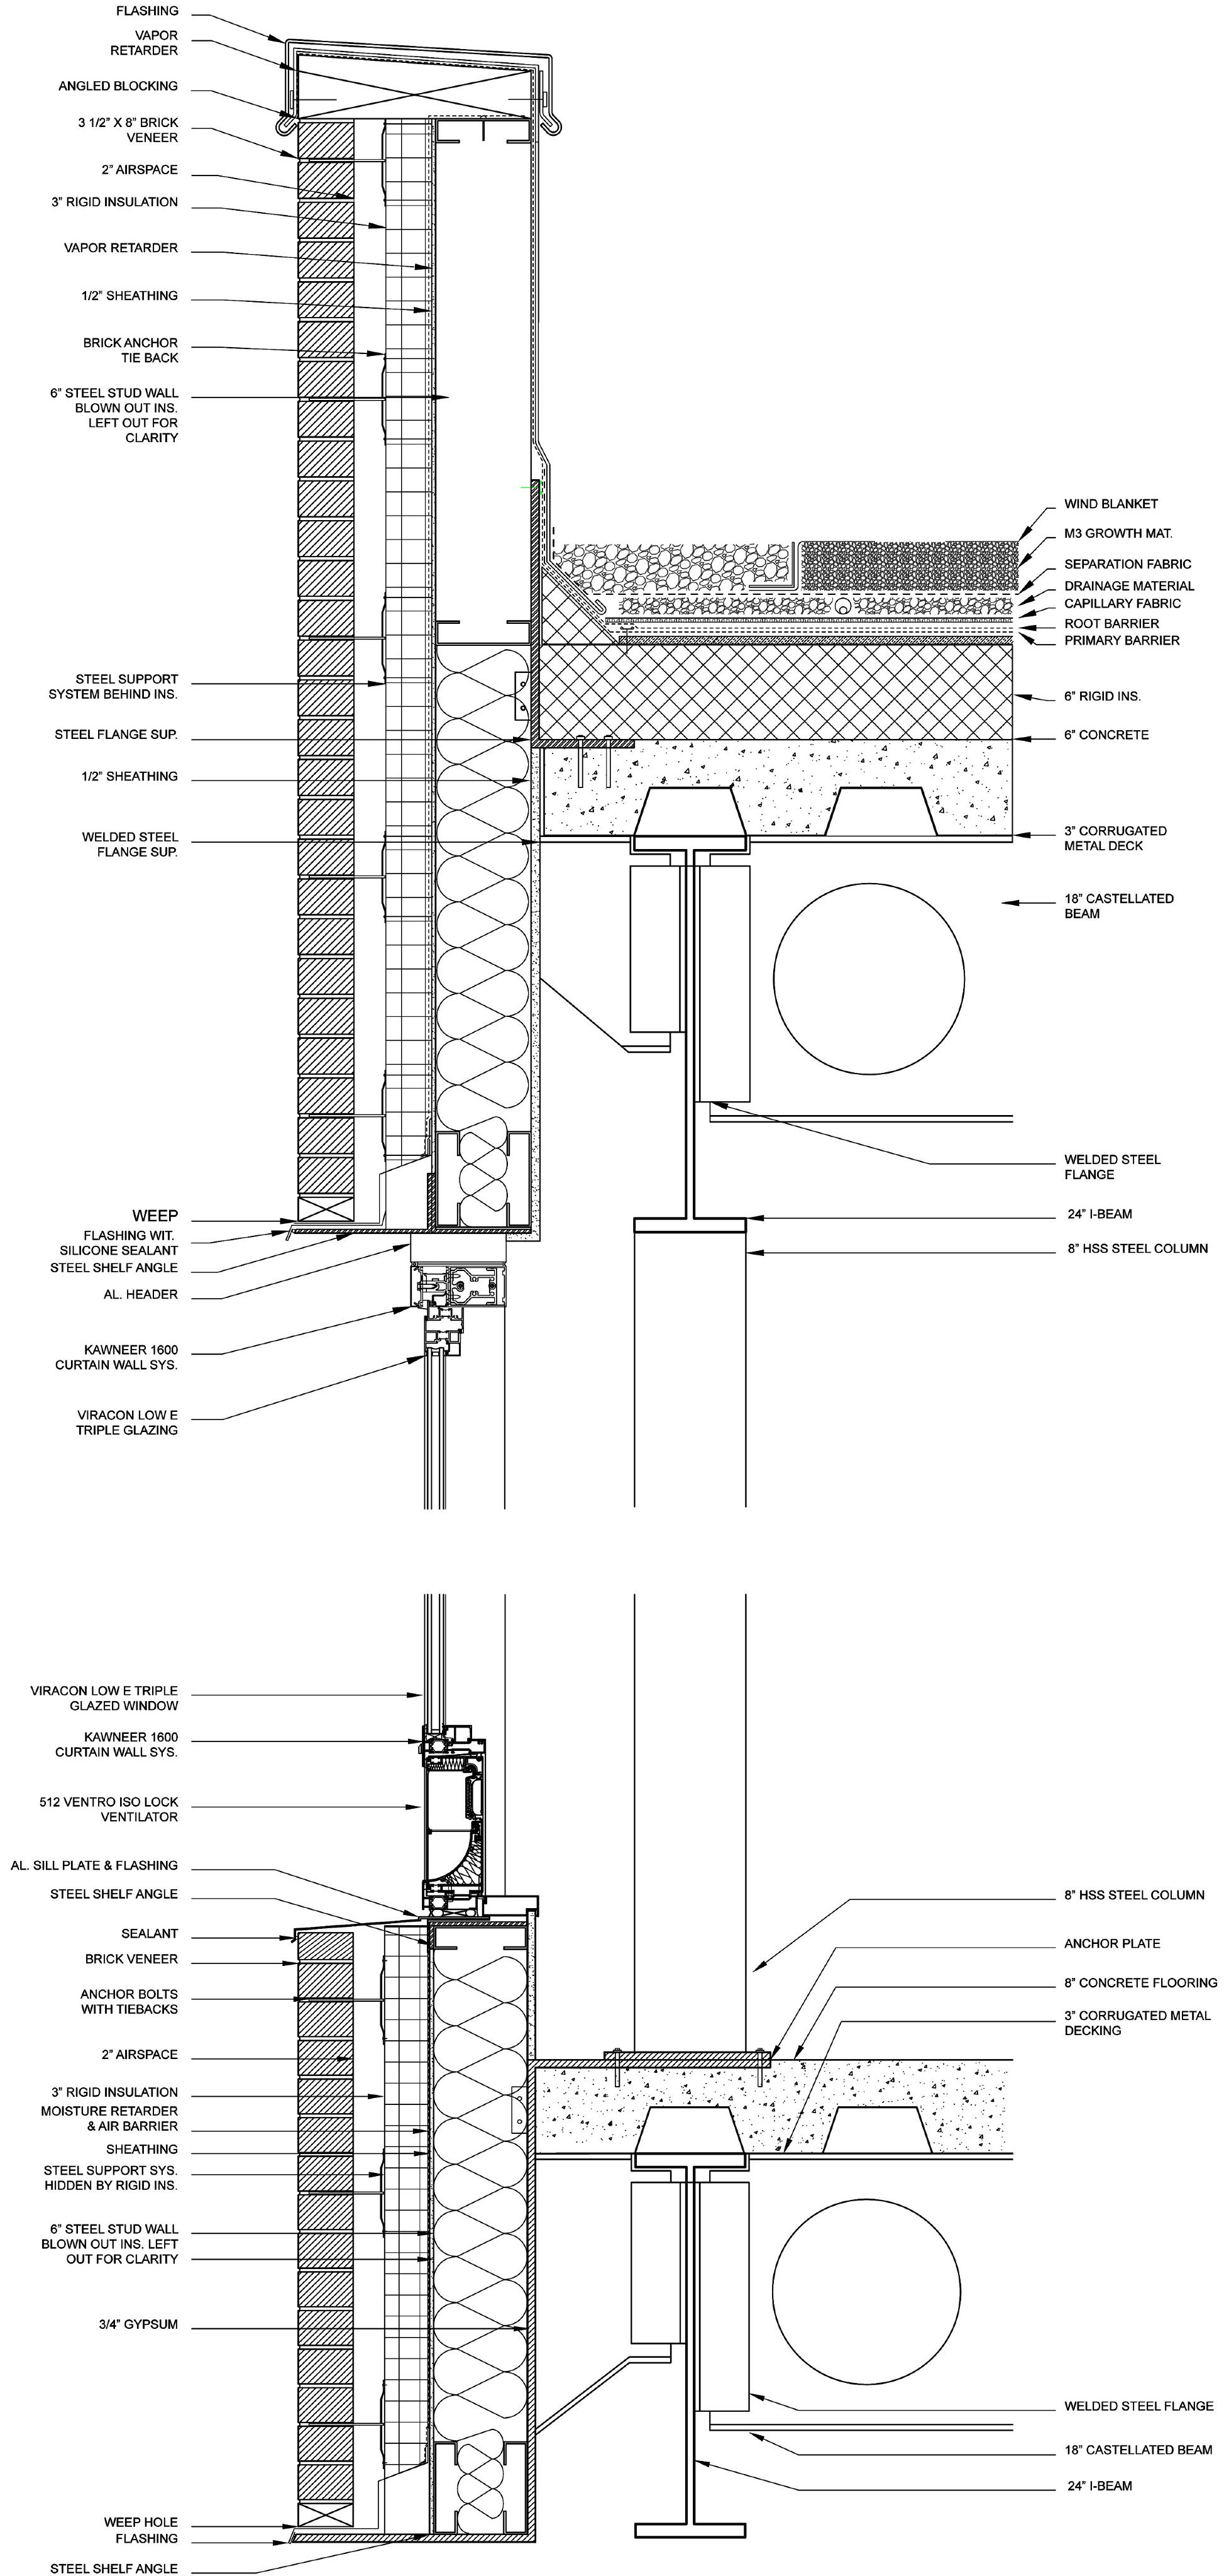 Superior Wall Timber Frame House Construction Detail also EAM024 furthermore Structural Design Wood Framing Home Inspector moreover Spider Curtain Wall Connection Detail 2gMIVaSZKp2S4ehs 7CNhcA71bd38JNOx2X62SfAjRLAqgNwf0gzmRPq cl0WzaGRT0Xjtcy 7Cbm5OJ1Ftcux808w further Planning Your Store Layout. on foundation floor wall 3d detail